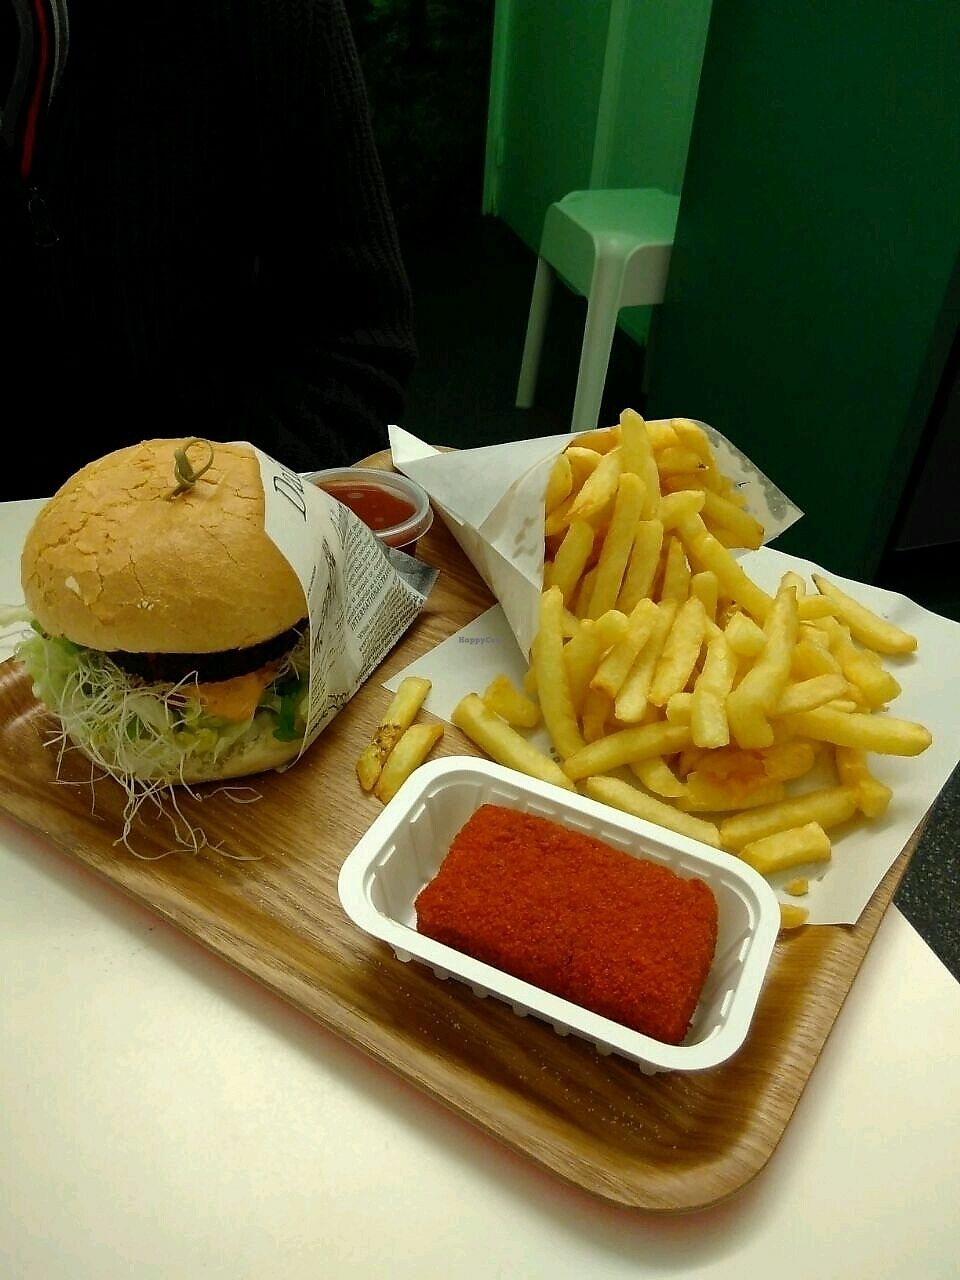 """Photo of Frituur Chips  by <a href=""""/members/profile/Nandi"""">Nandi</a> <br/>Vegan burger, mini fries and a bamihap <br/> November 10, 2017  - <a href='/contact/abuse/image/100970/323923'>Report</a>"""